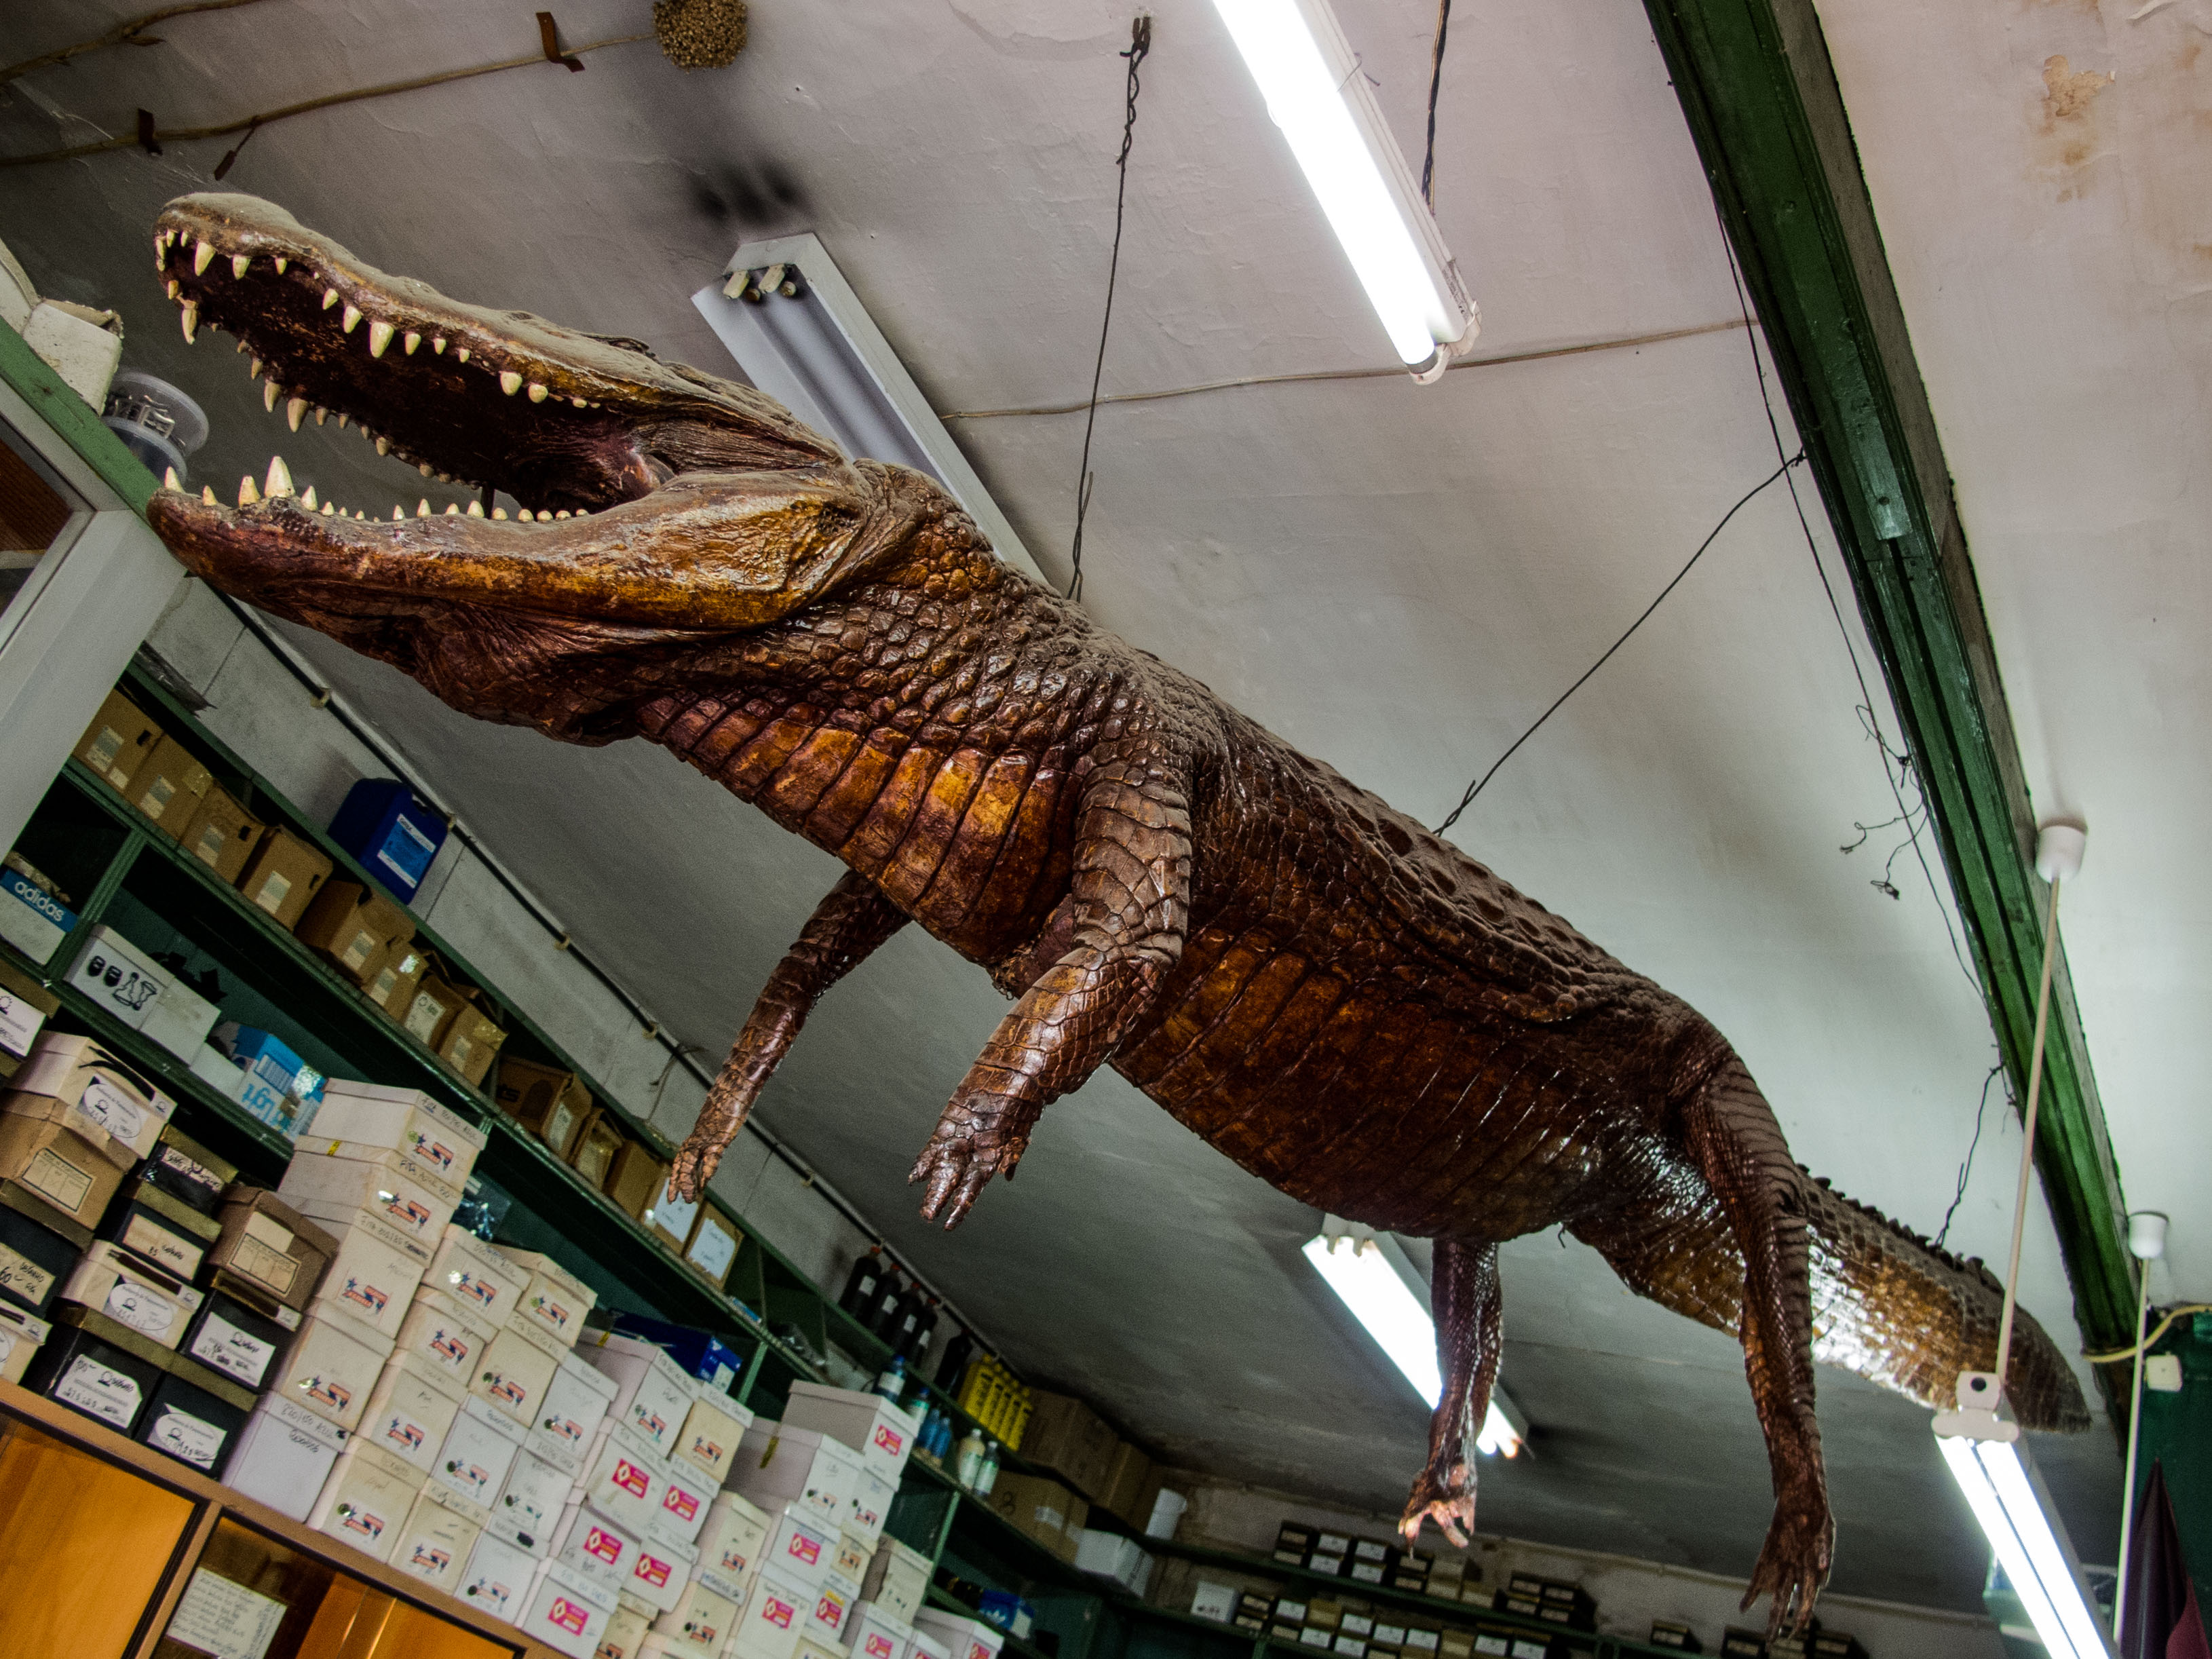 A three meter crocodile, hanging on the shop's ceiling.